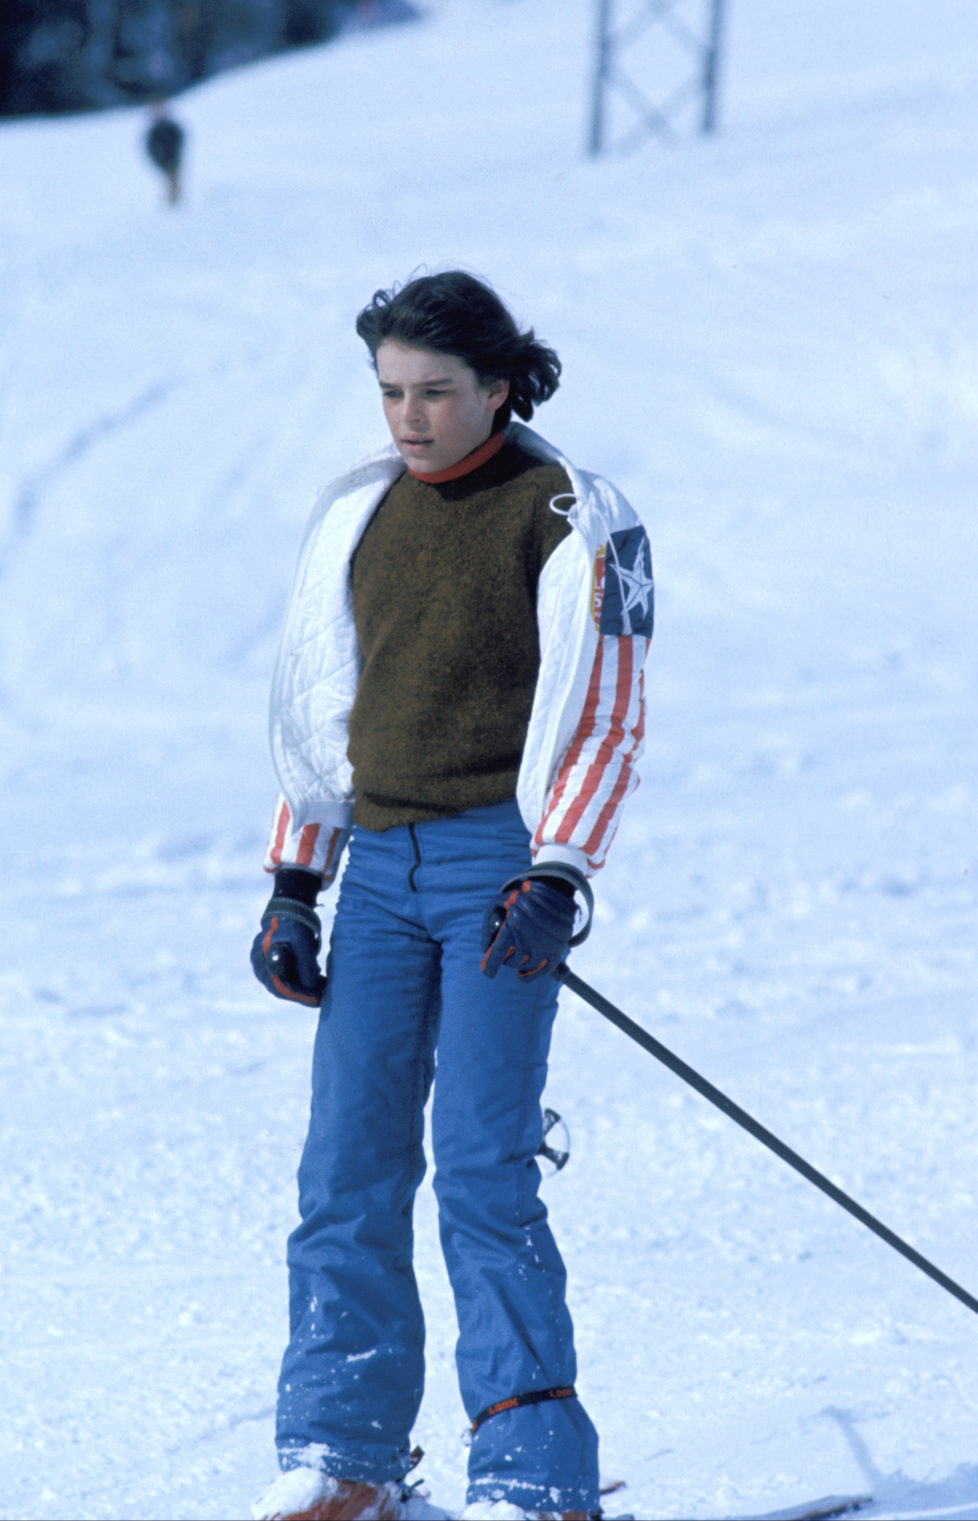 Gstaad, Switzerland -- 1 March 1977, Princess Stephanie of Monaco skiing at Gstaad., (Photo by Francis Apesteguy/Getty Images) *** Local Caption ***